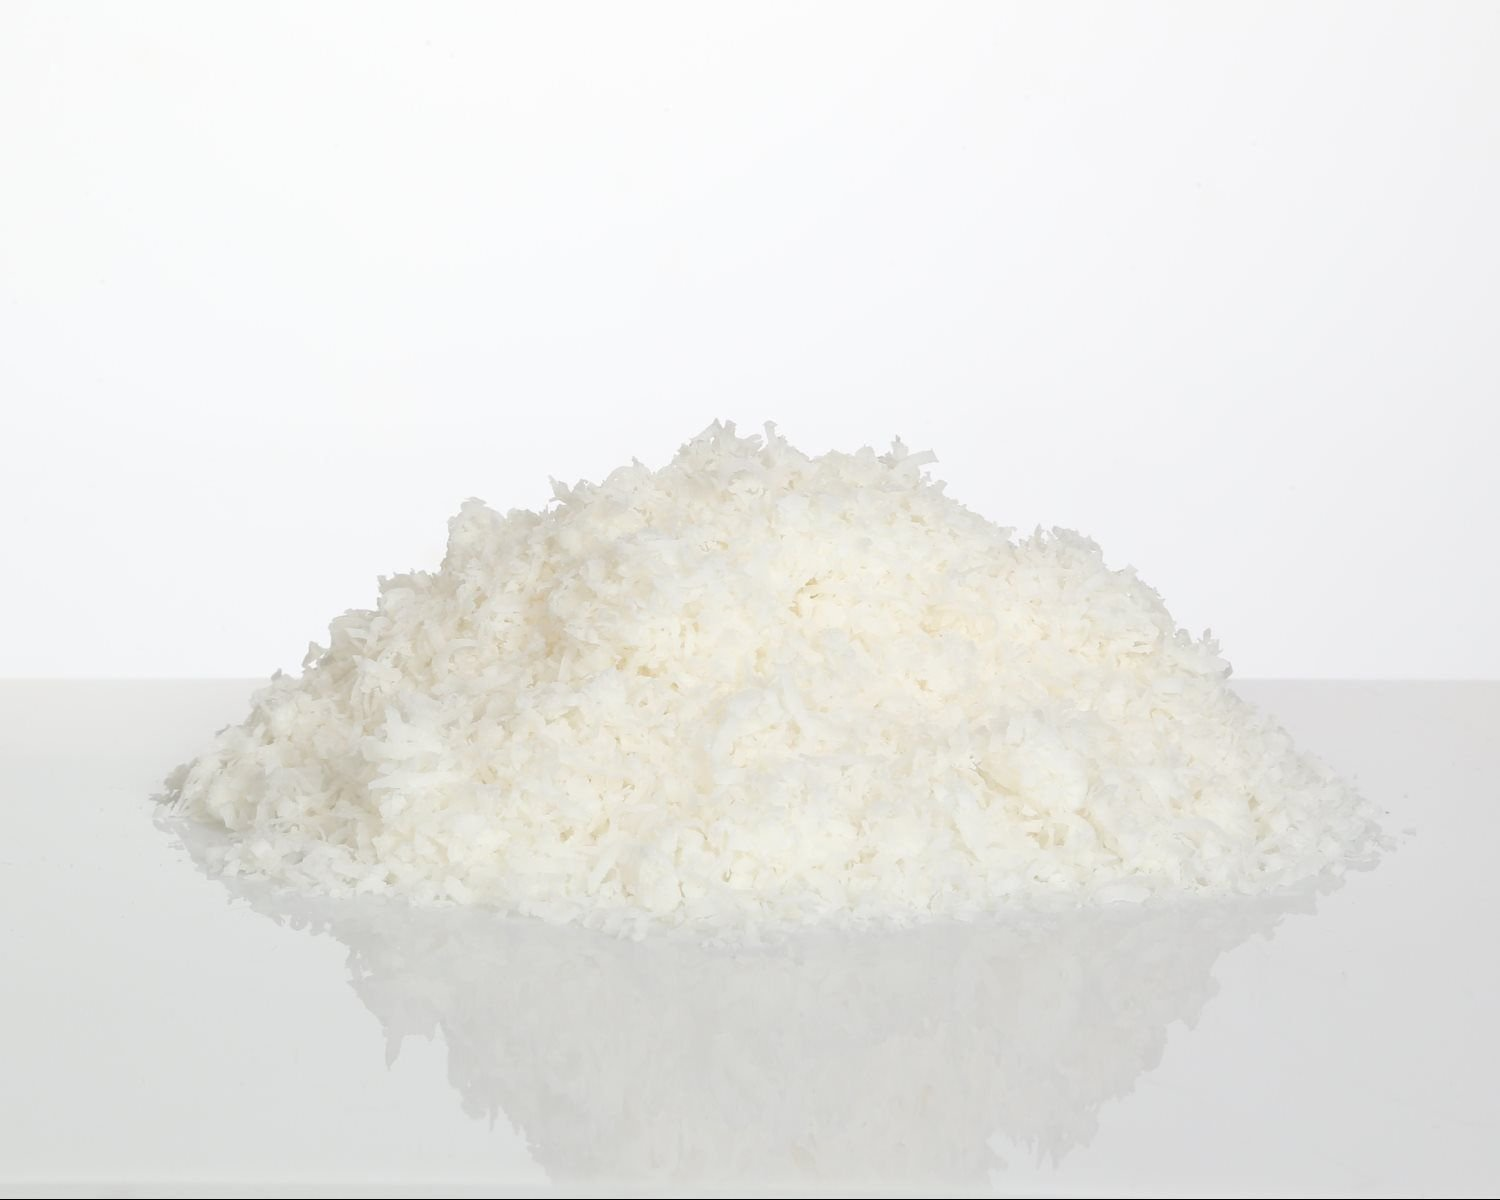 TR Toppers Snowflake Sweetened Coconut Flakes, Baking Decorating Flakes, Kosher OUV Pareve, 5 x 2 lb bags by TR Toppers